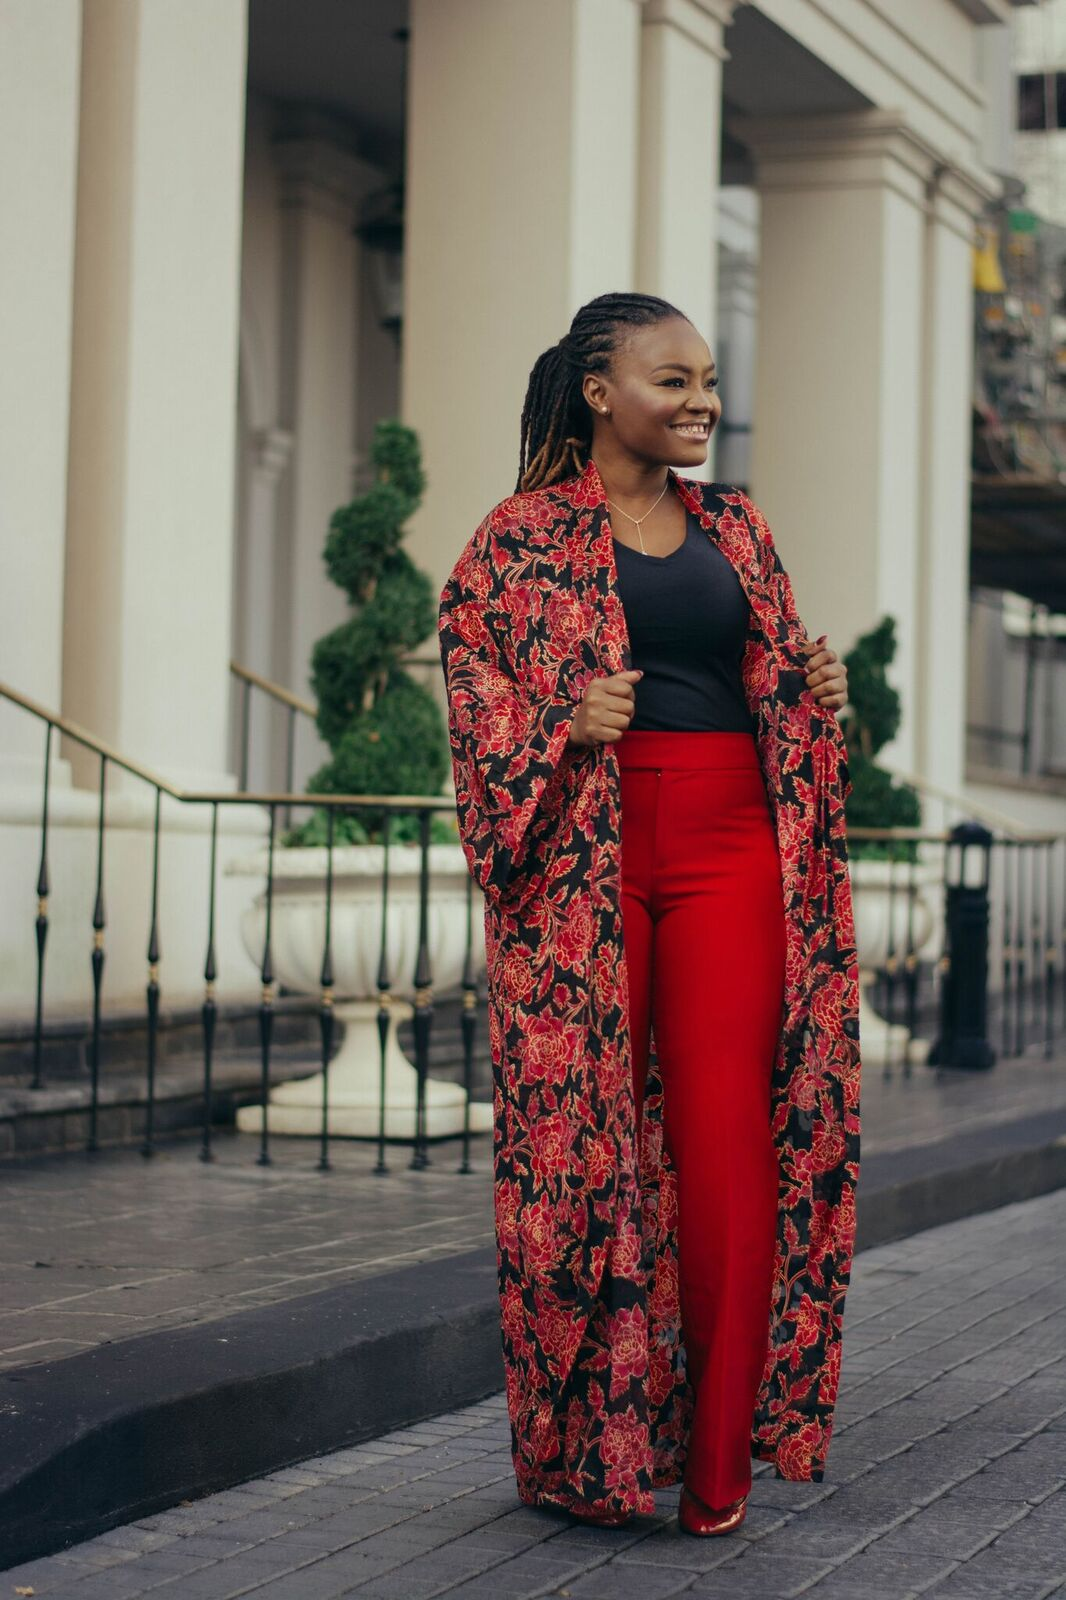 STYLE: FLORAL DUSTER